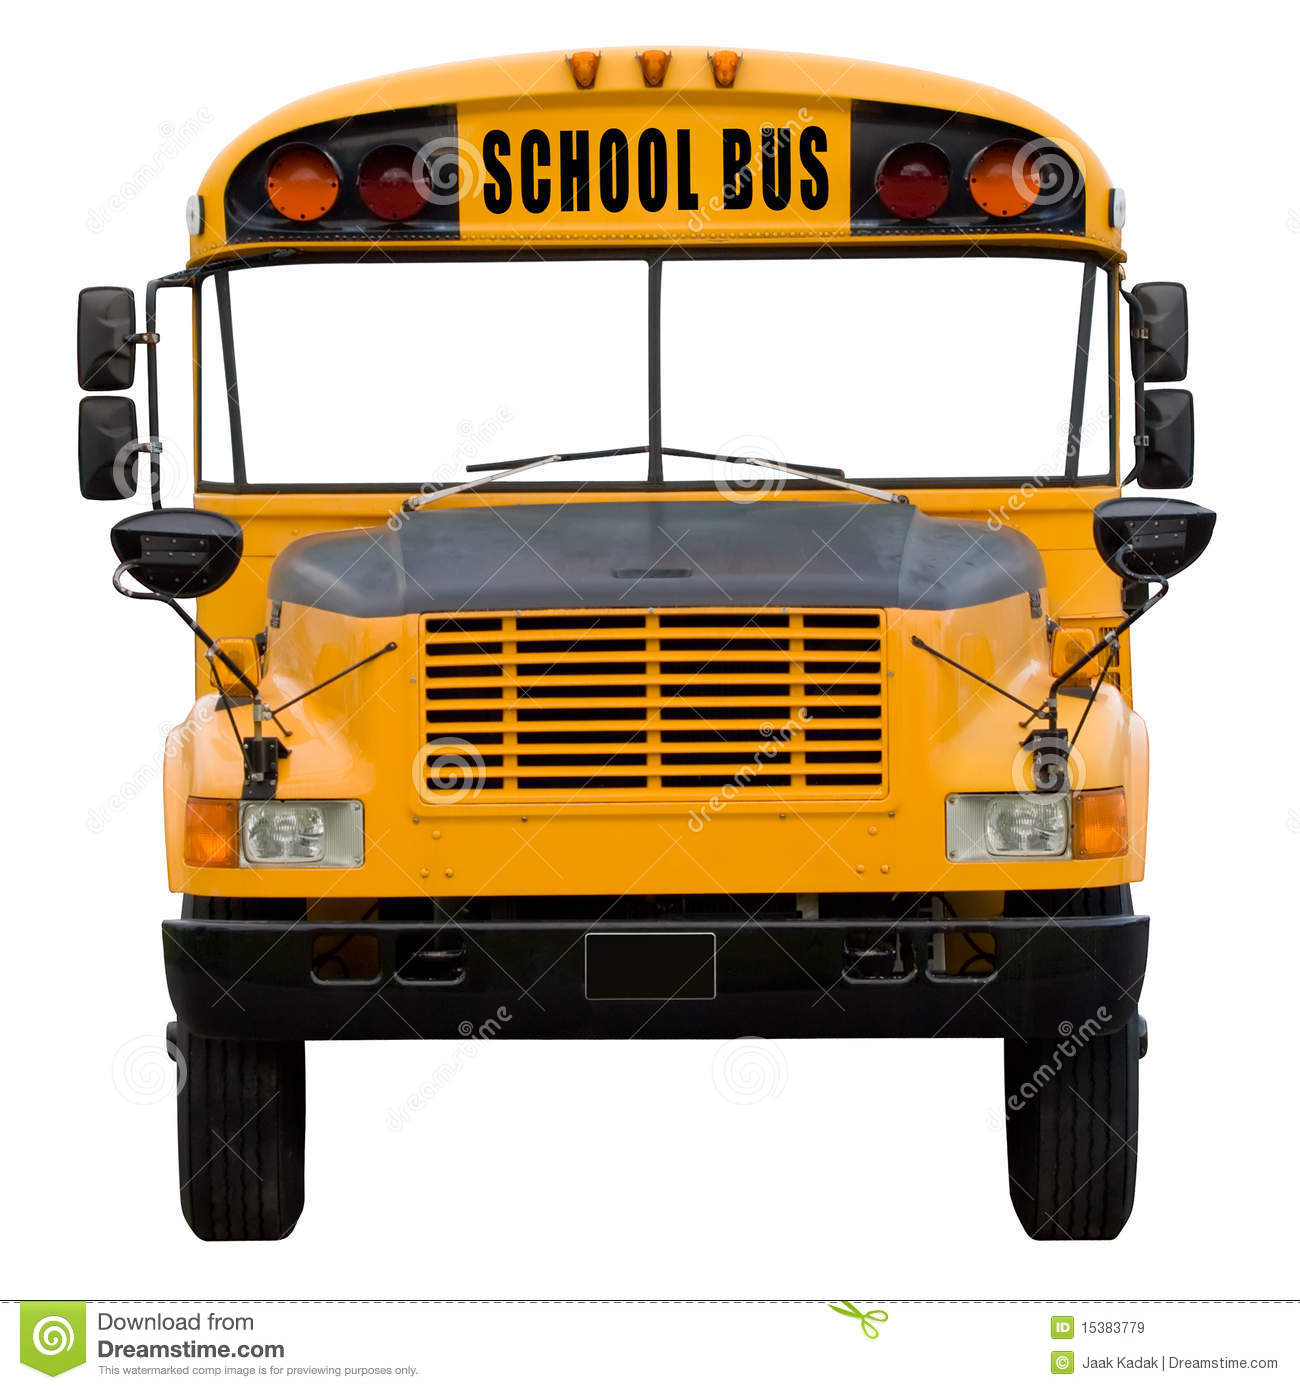 School Bus Royalty Free Stock Images - Image: 15383779